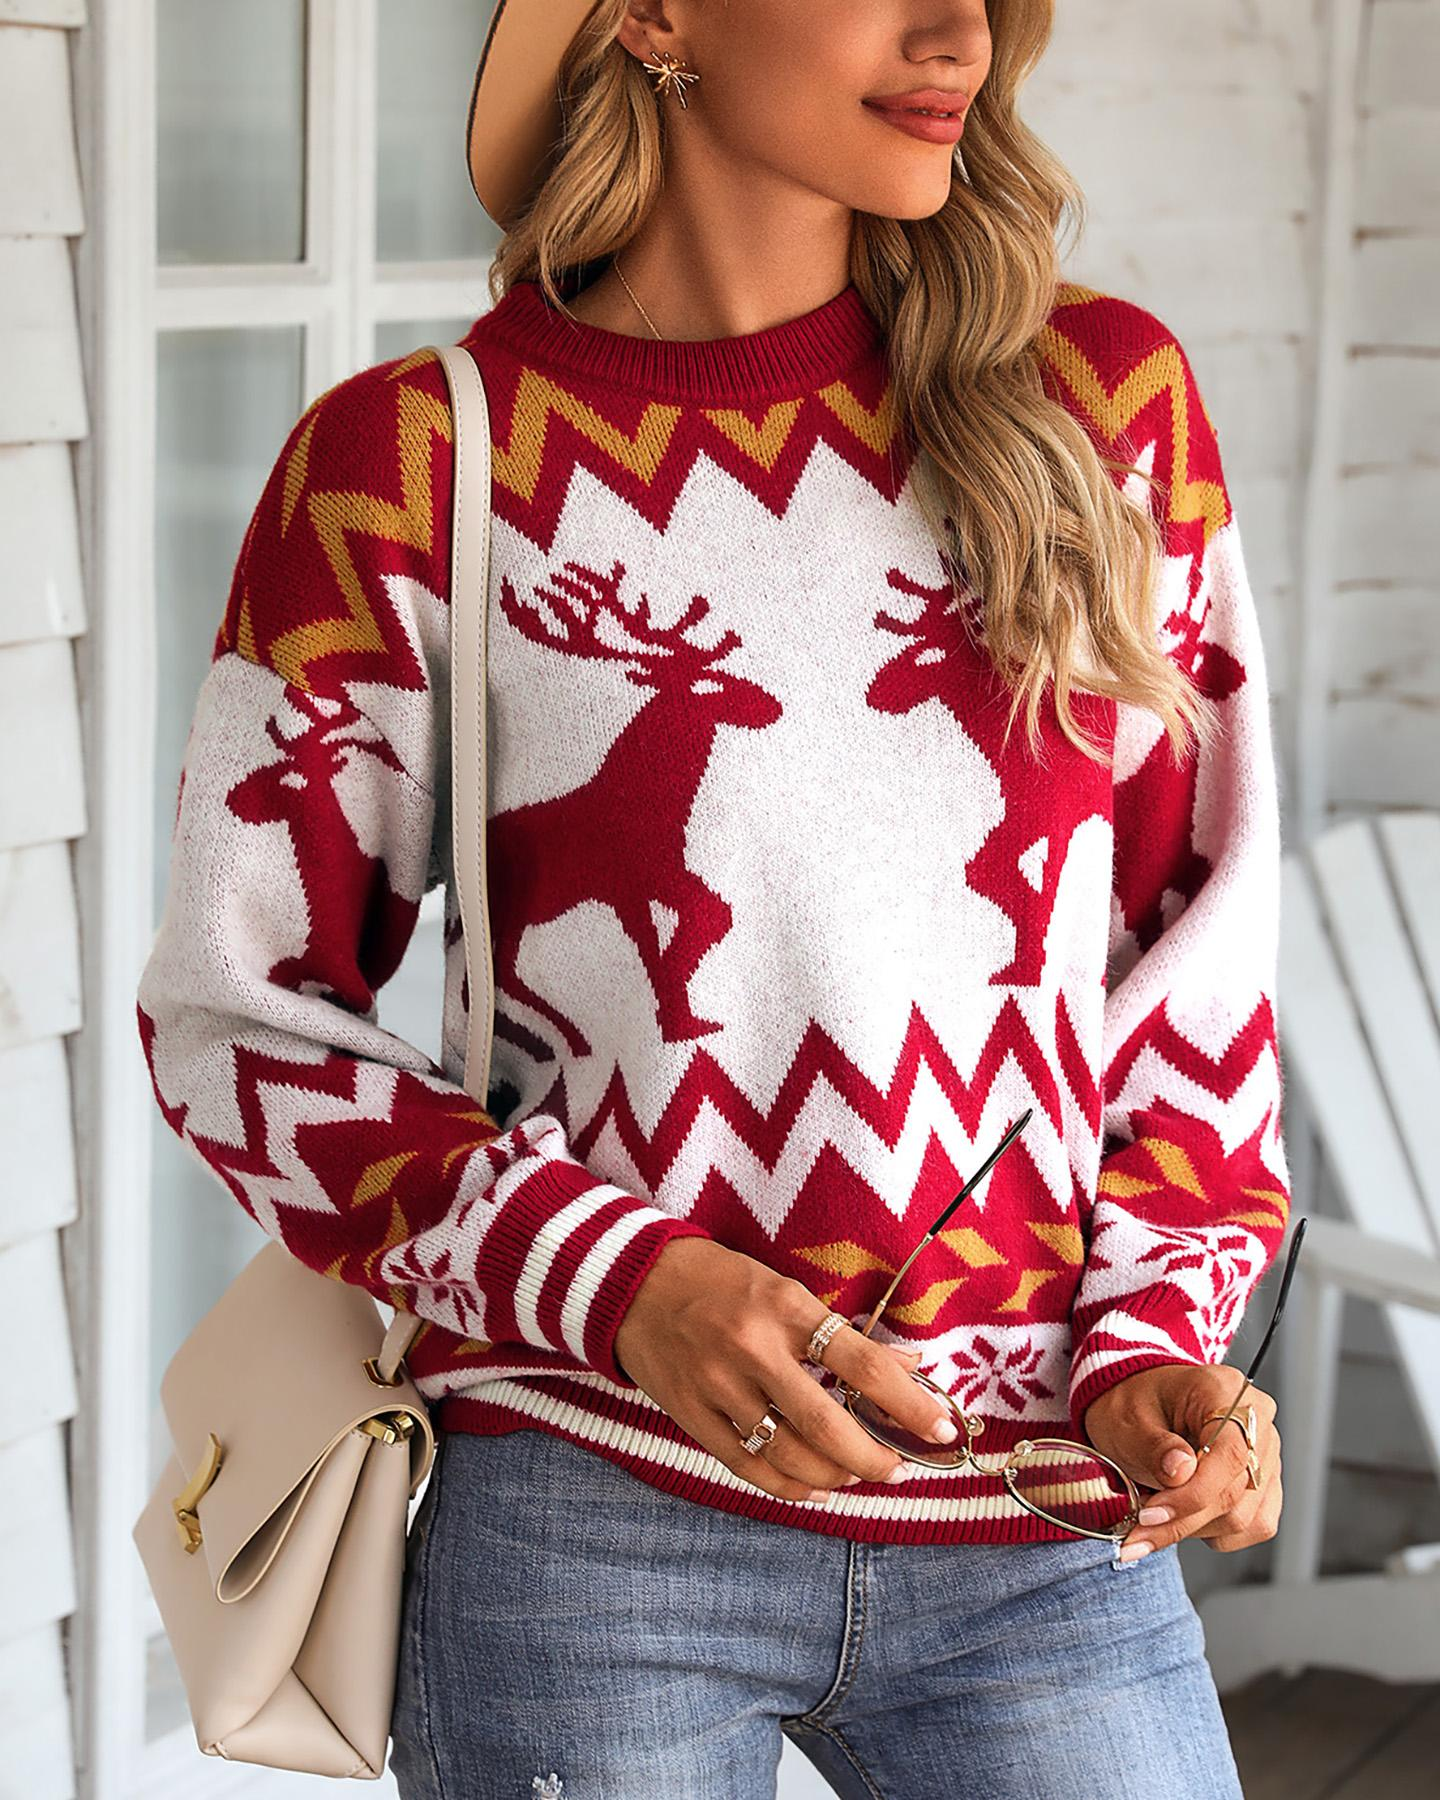 ivrose / Christmas Reindeer Print Knit Ugly Sweater